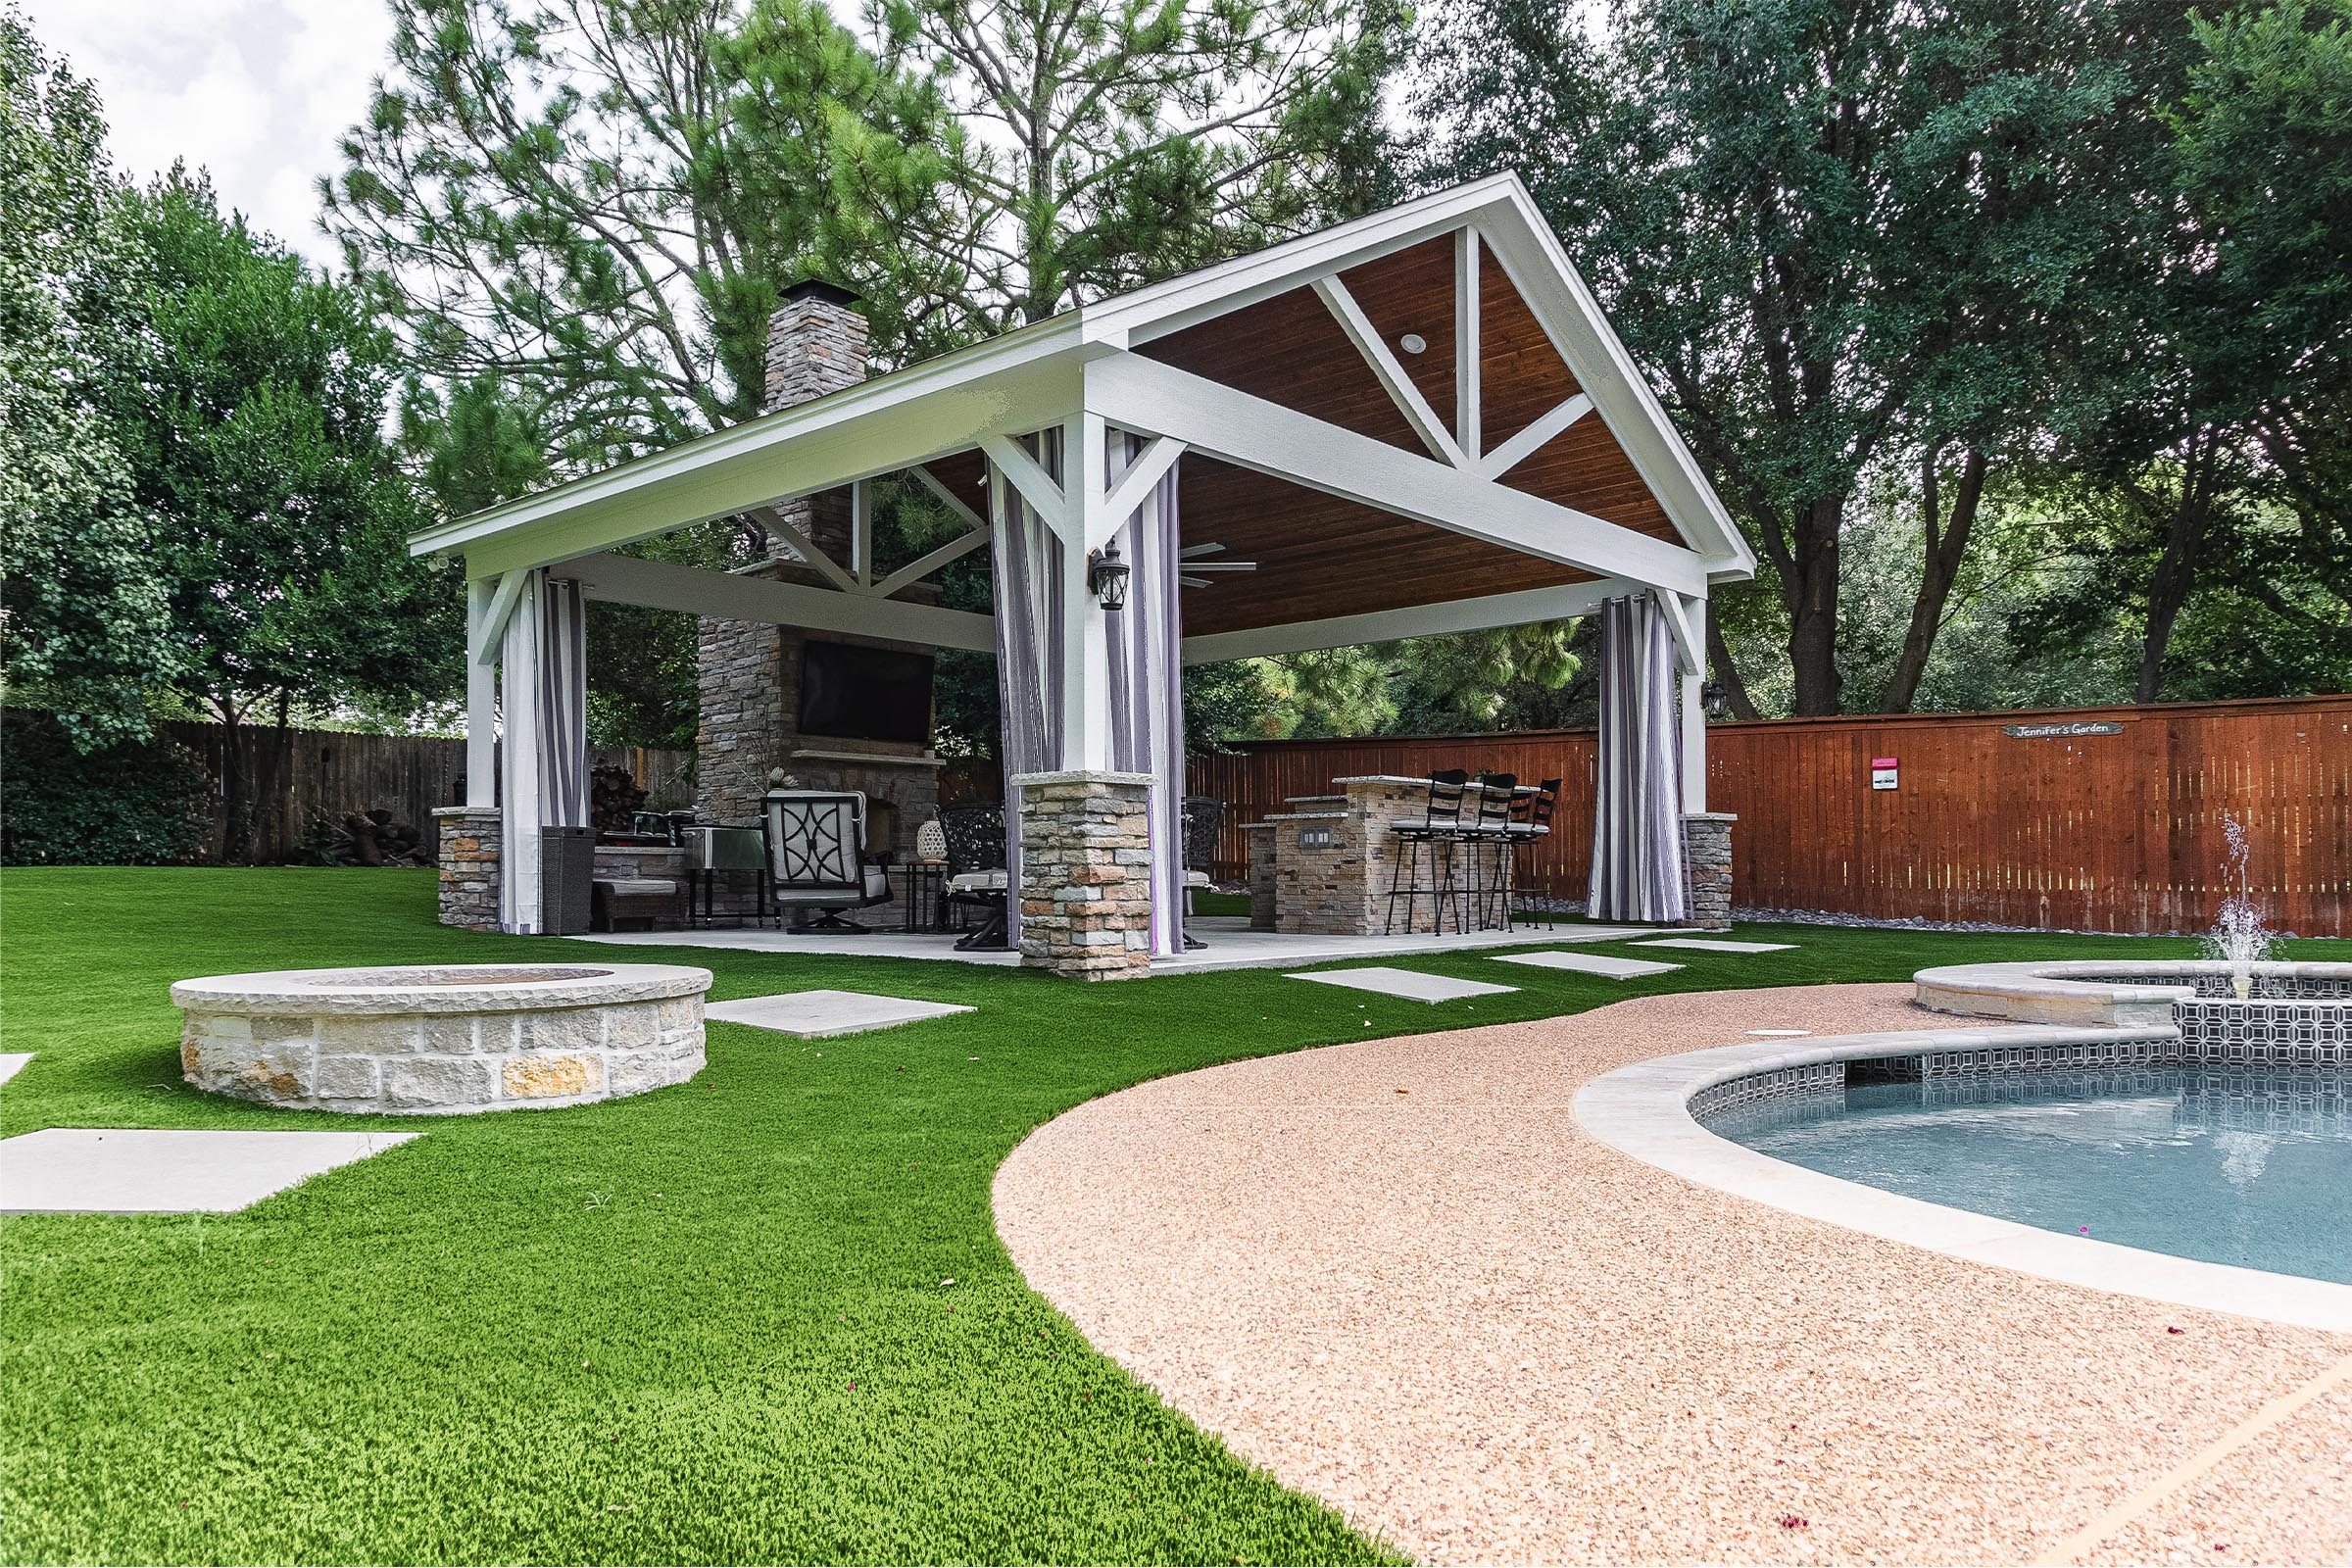 Outdoor Kitchens, Patio Covers | Fort Worth, Burleson TX ... on Dfw Complete Outdoor Living id=18869